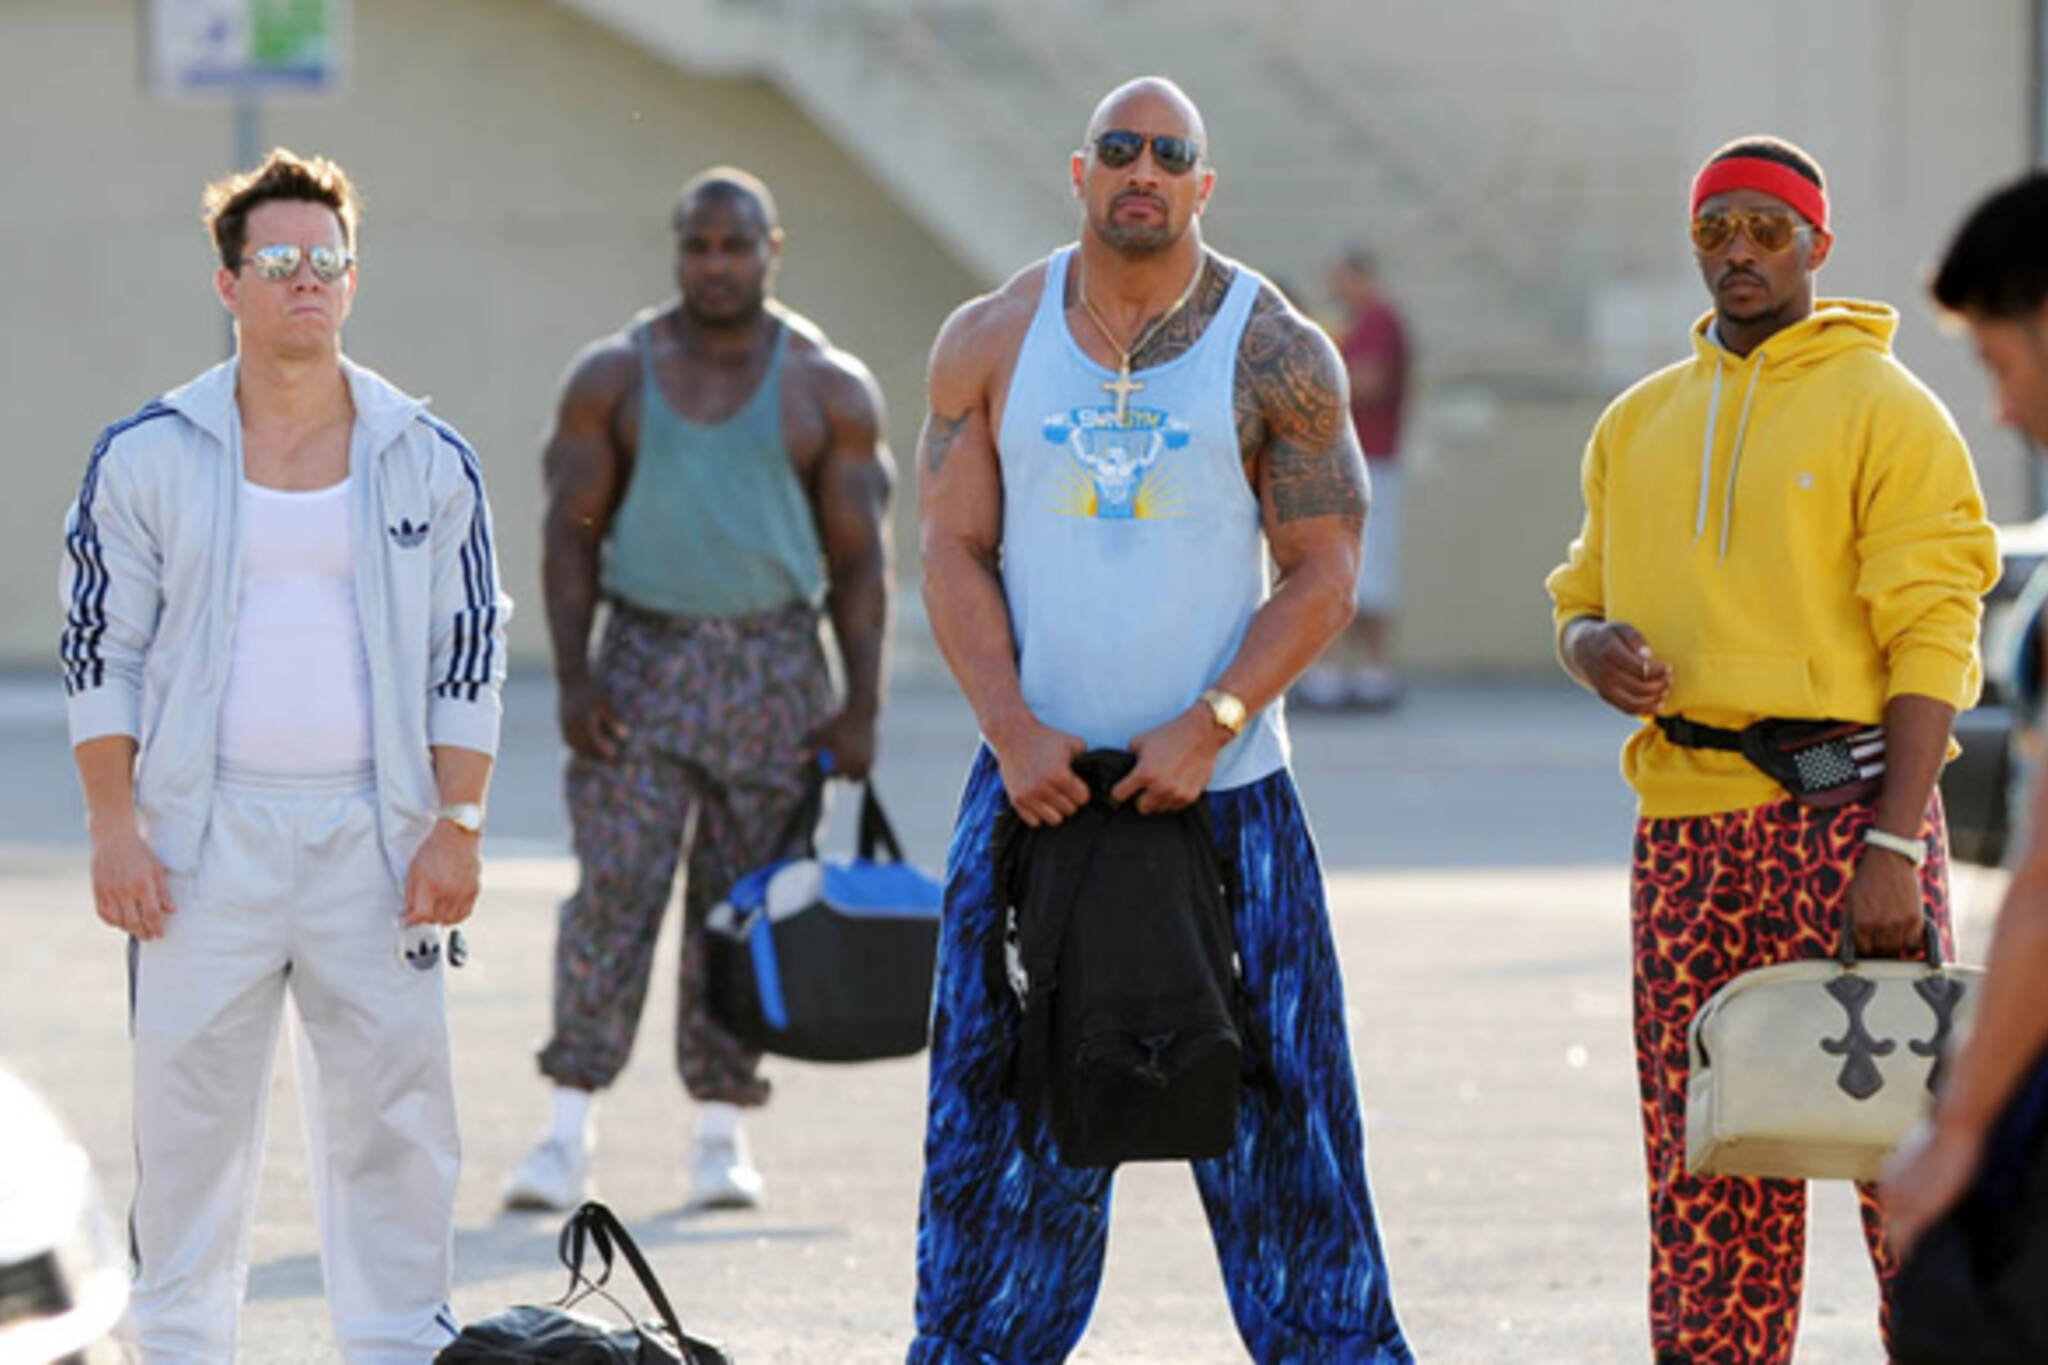 Pain and Gain film